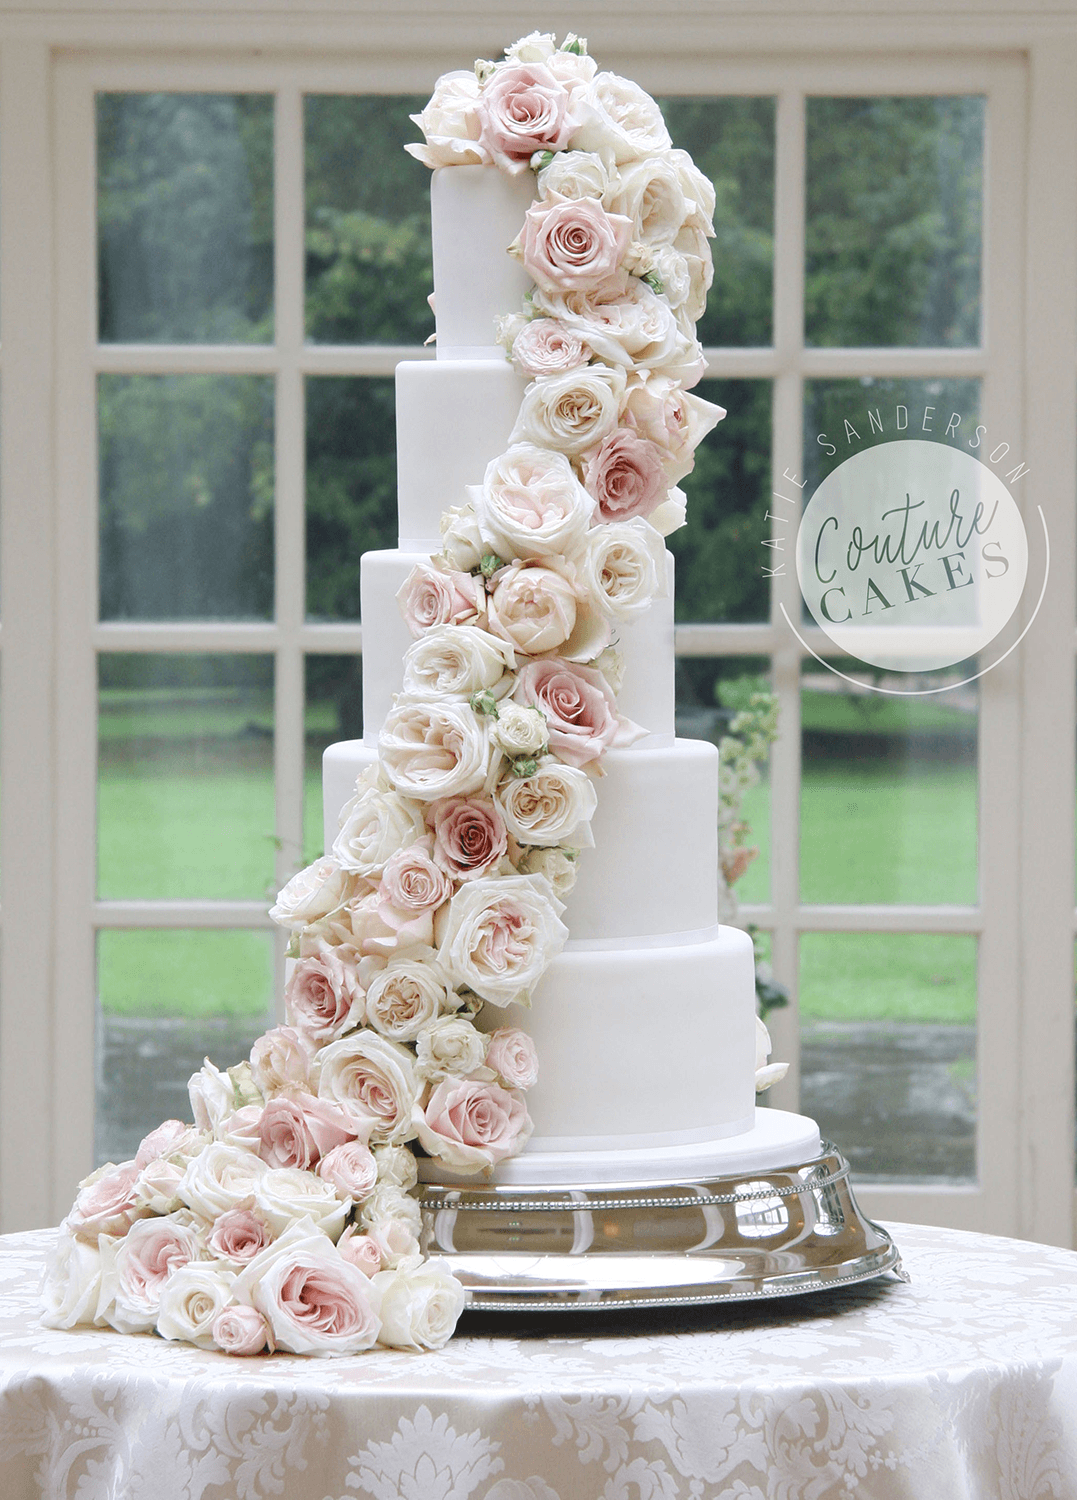 Tiered wedding cakes couture cakes serves 220 portions price category a 645 plus flowers from 120 junglespirit Images